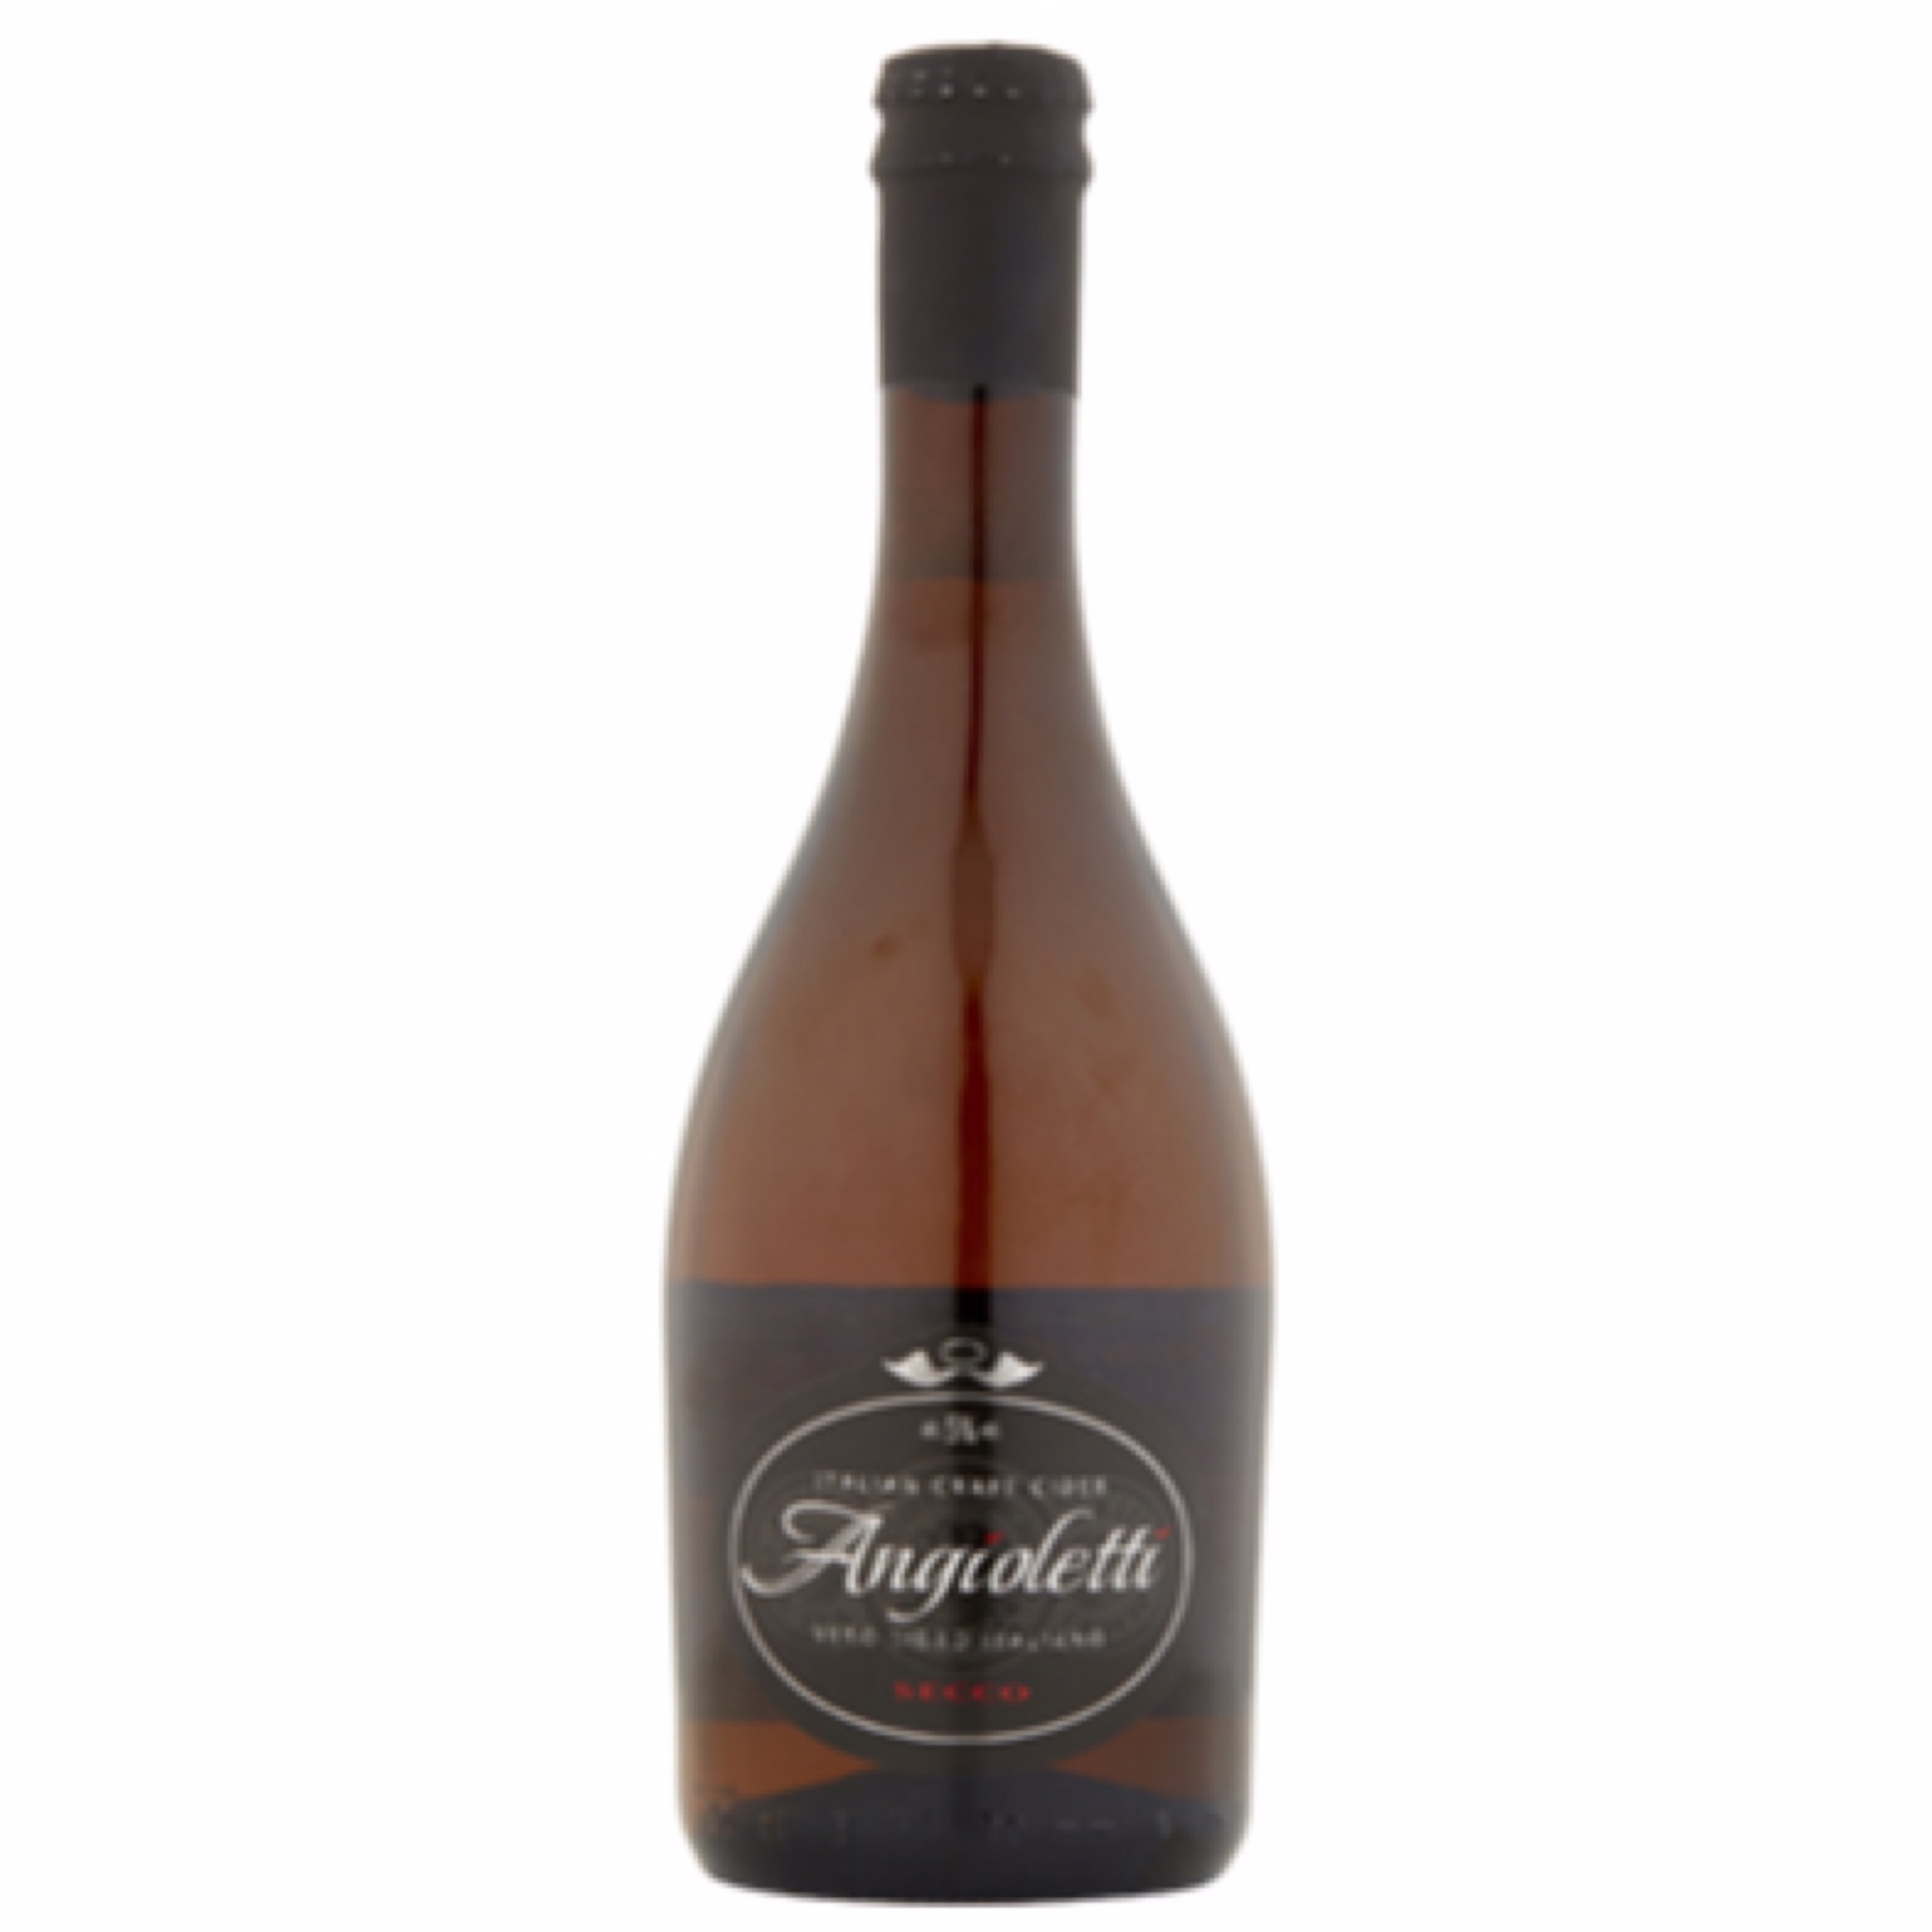 Angioletti Secco craft Italian cider 5% 500ml